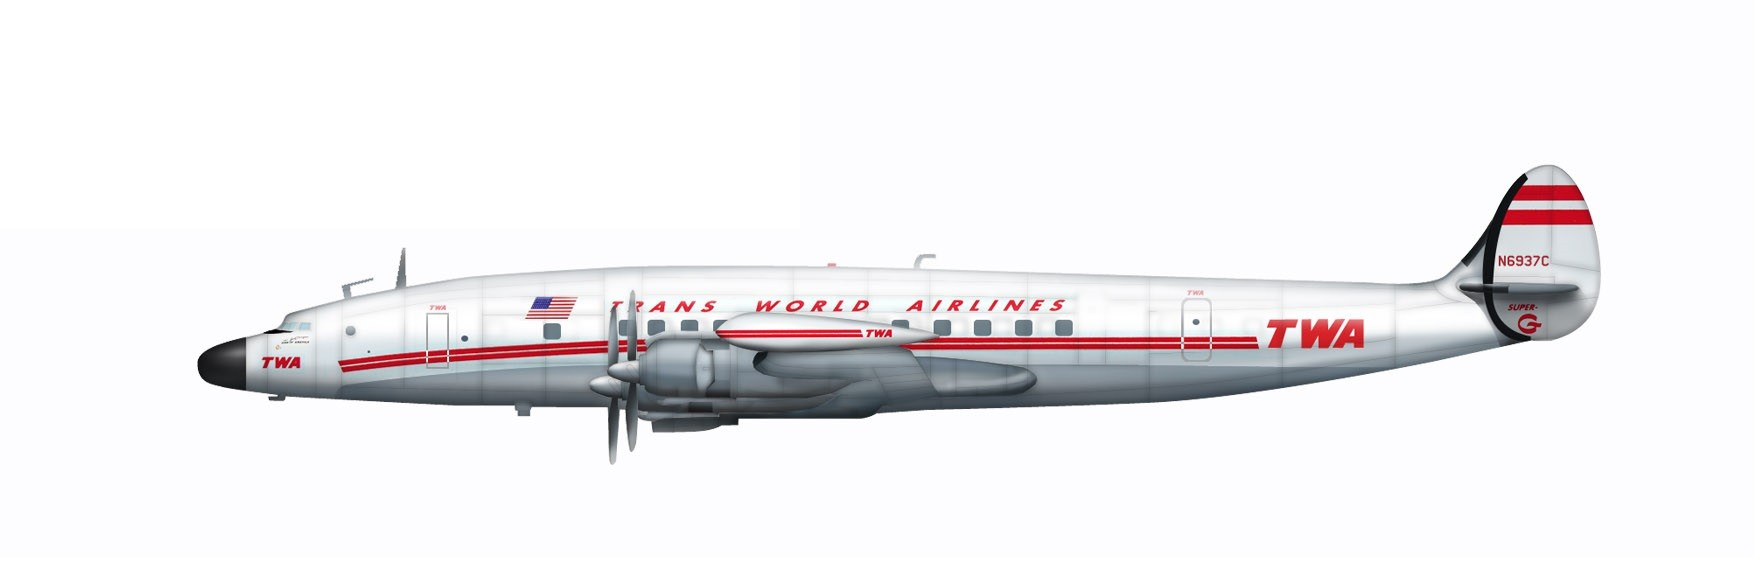 hobby airplane with Twa Lockheed L 1049 Super Constellation Reg N6937c Star Of America Hl9015 Hobby Master 1 200 on Ten Rc Mistakes To Avoid moreover 1587732 as well 1778558 likewise 648392 additionally 1406960.